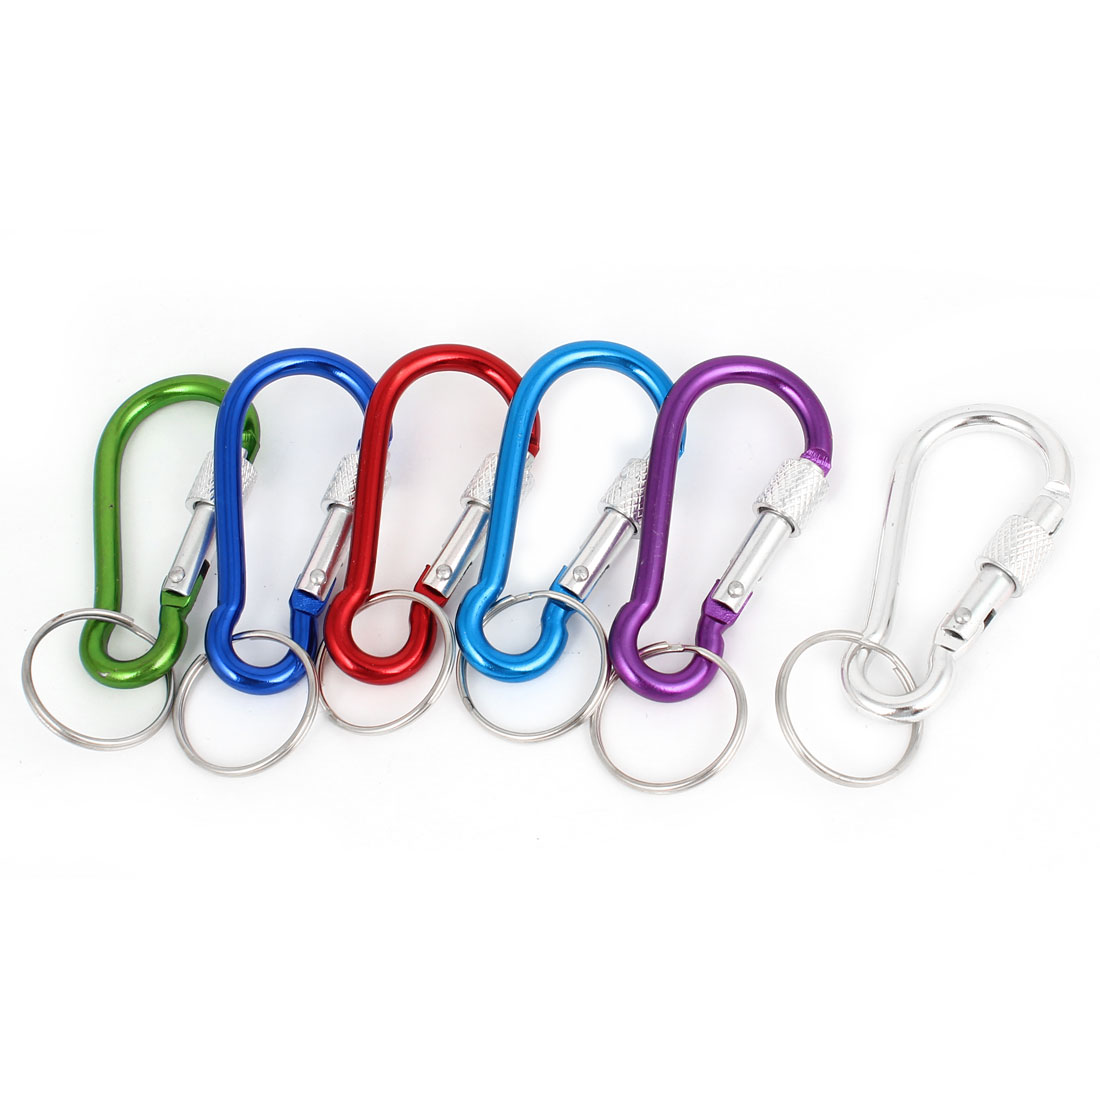 Colorful Aluminum Alloy Spring Loaded Gate Carabiner Hook w Keyring 6 Pcs